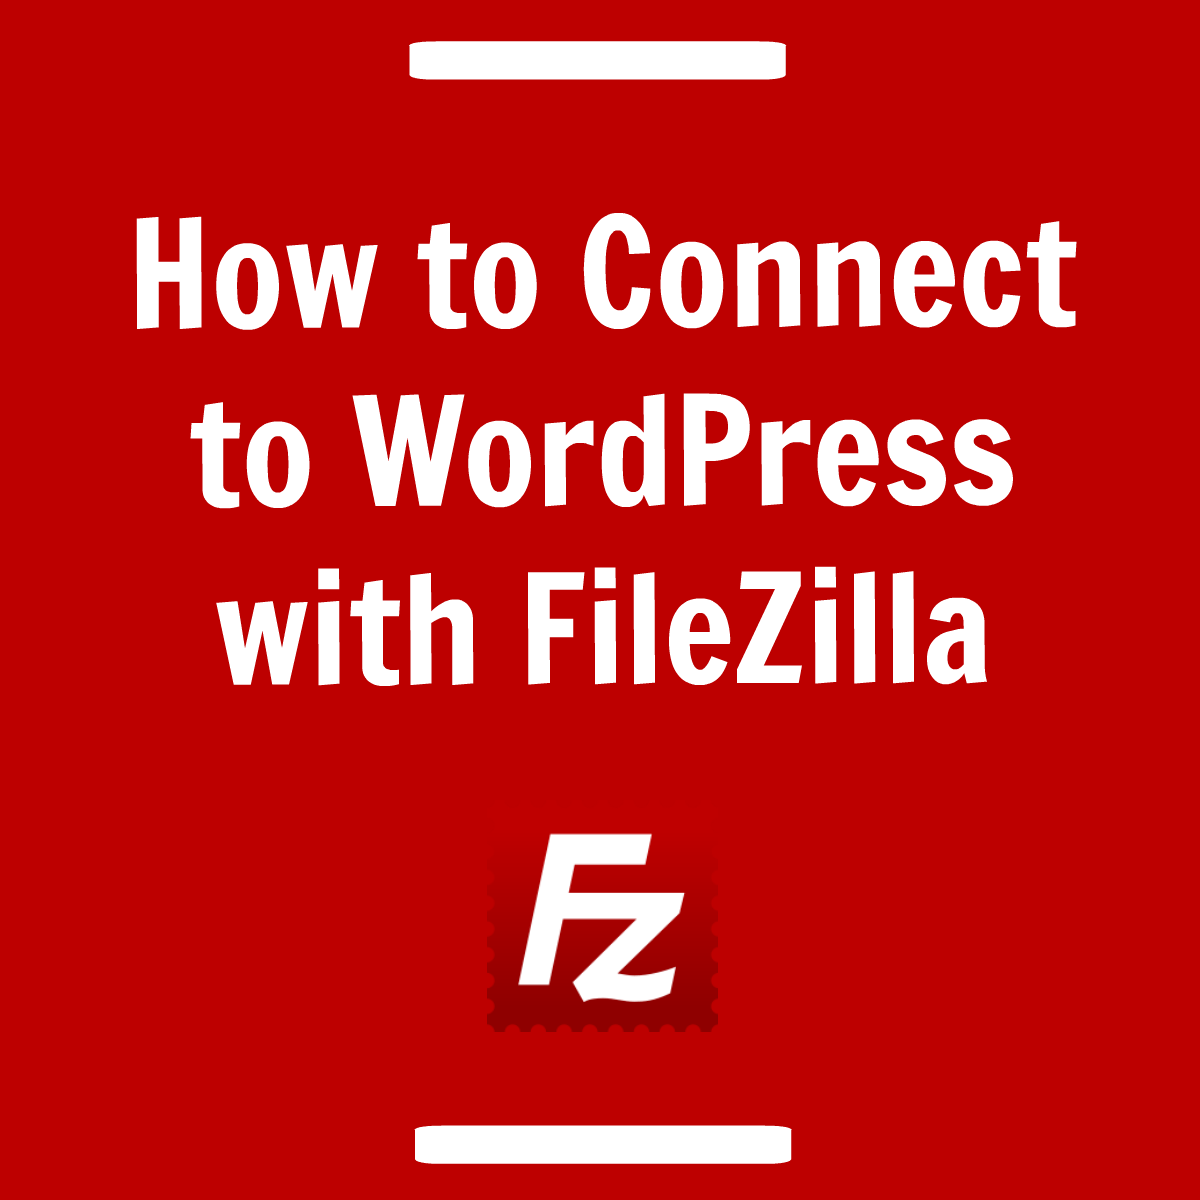 How to Connect to WordPress with FTP SFTP Filezilla